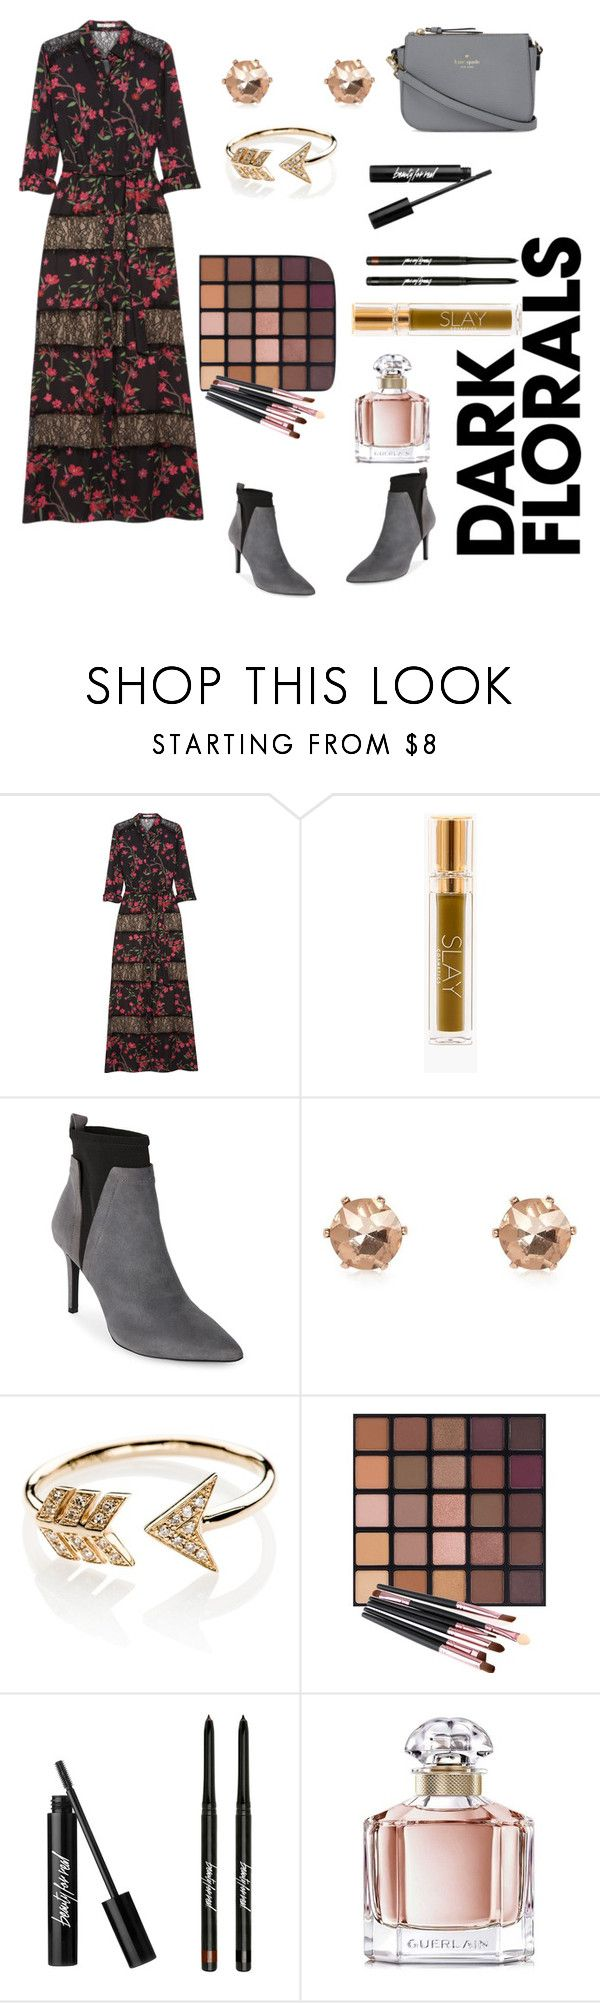 """""""Untitled #853"""" by mamatoodie-1 ❤ liked on Polyvore featuring Alice + Olivia, Jones New York, River Island, EF Collection, Guerlain and Kate Spade"""